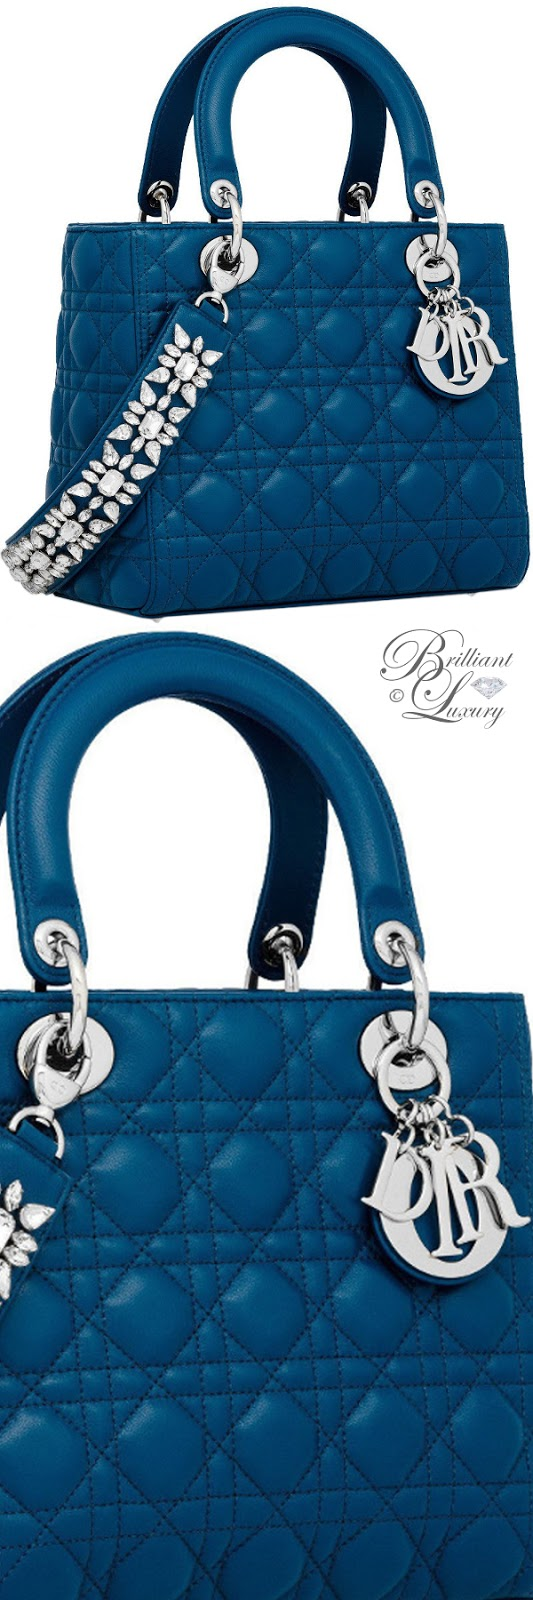 Brilliant Luxury ♦ Lady Dior bag in Poseidon Blue lambskin